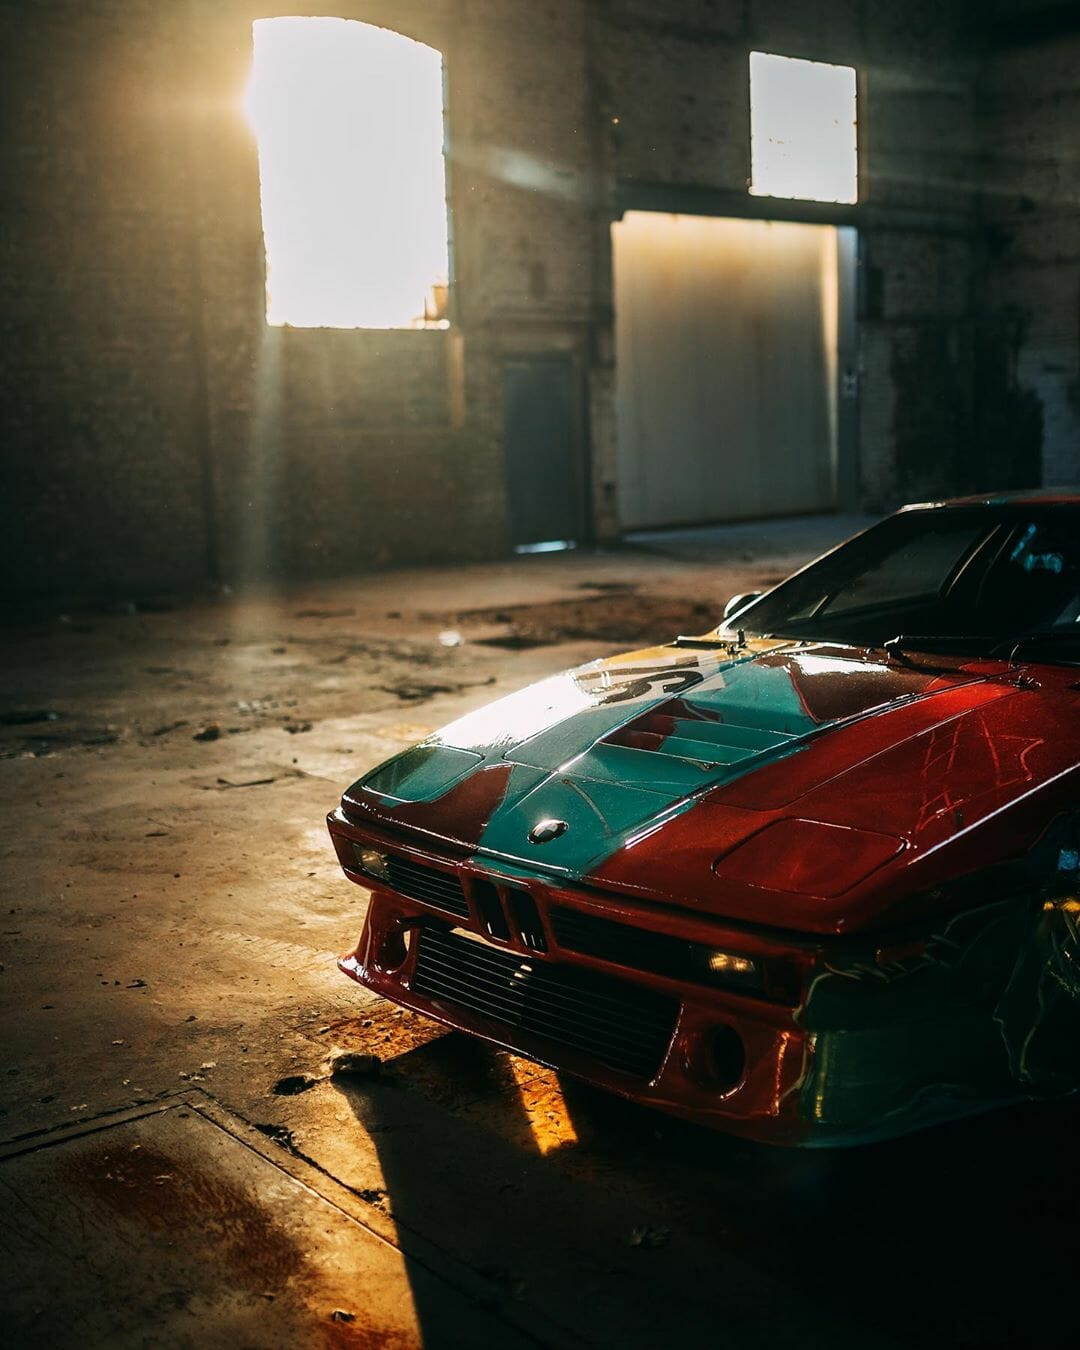 BMW M1 by Andy Warhol - BMW Art Cars - Picture 7 by Stephan Bauer